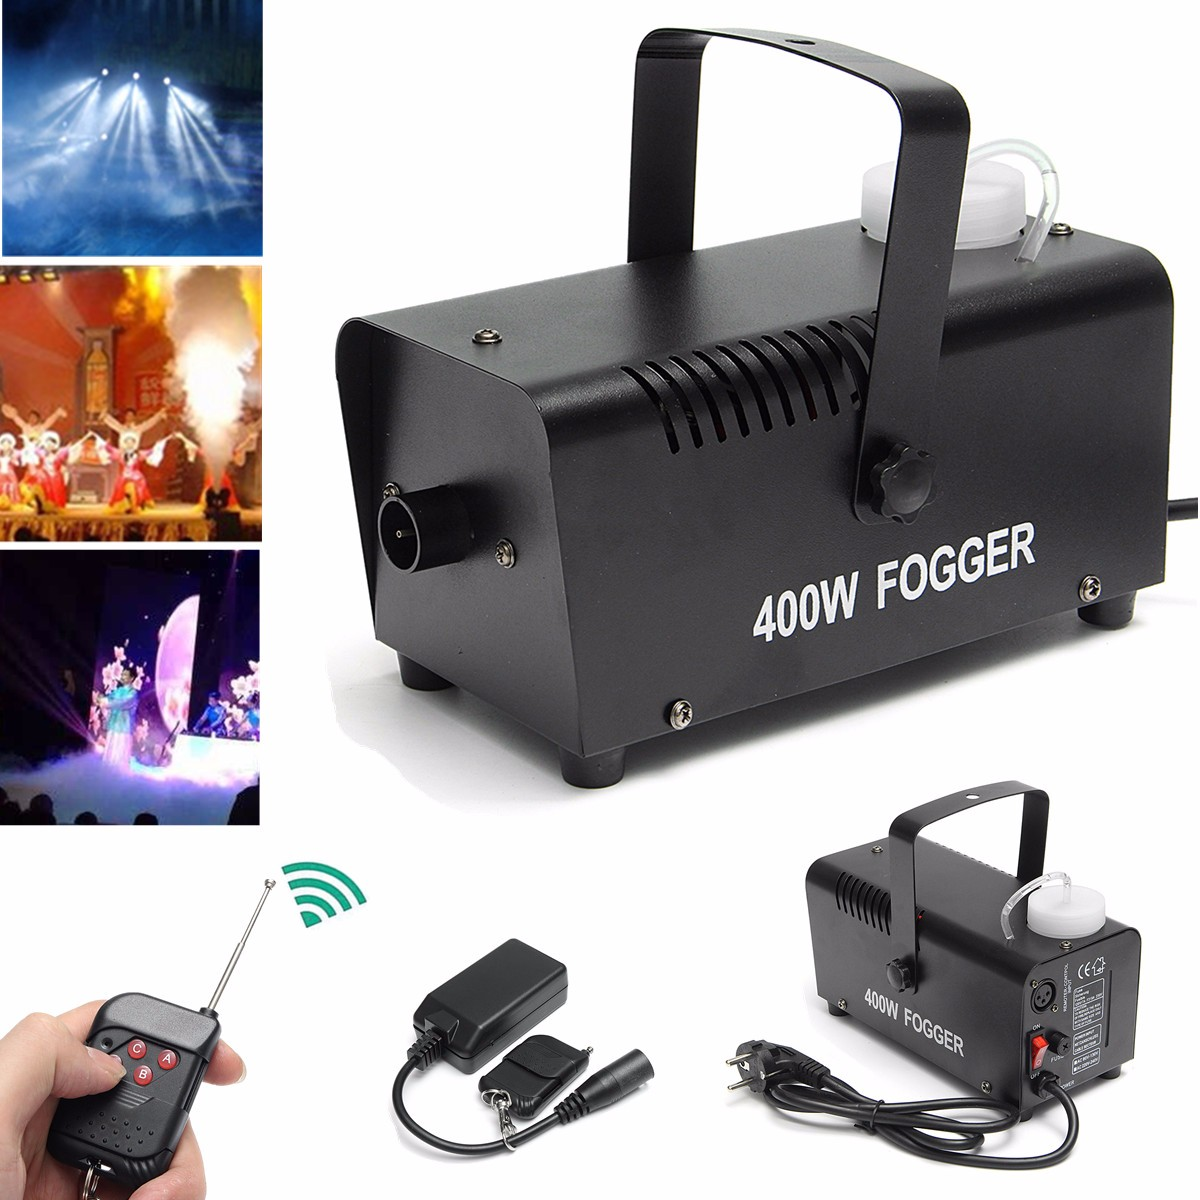 Mini LED RGB Wireless 400W Fog Smoke Mist Machine Effect Disco DJ Party Christmas With Remote Control LED Fogger